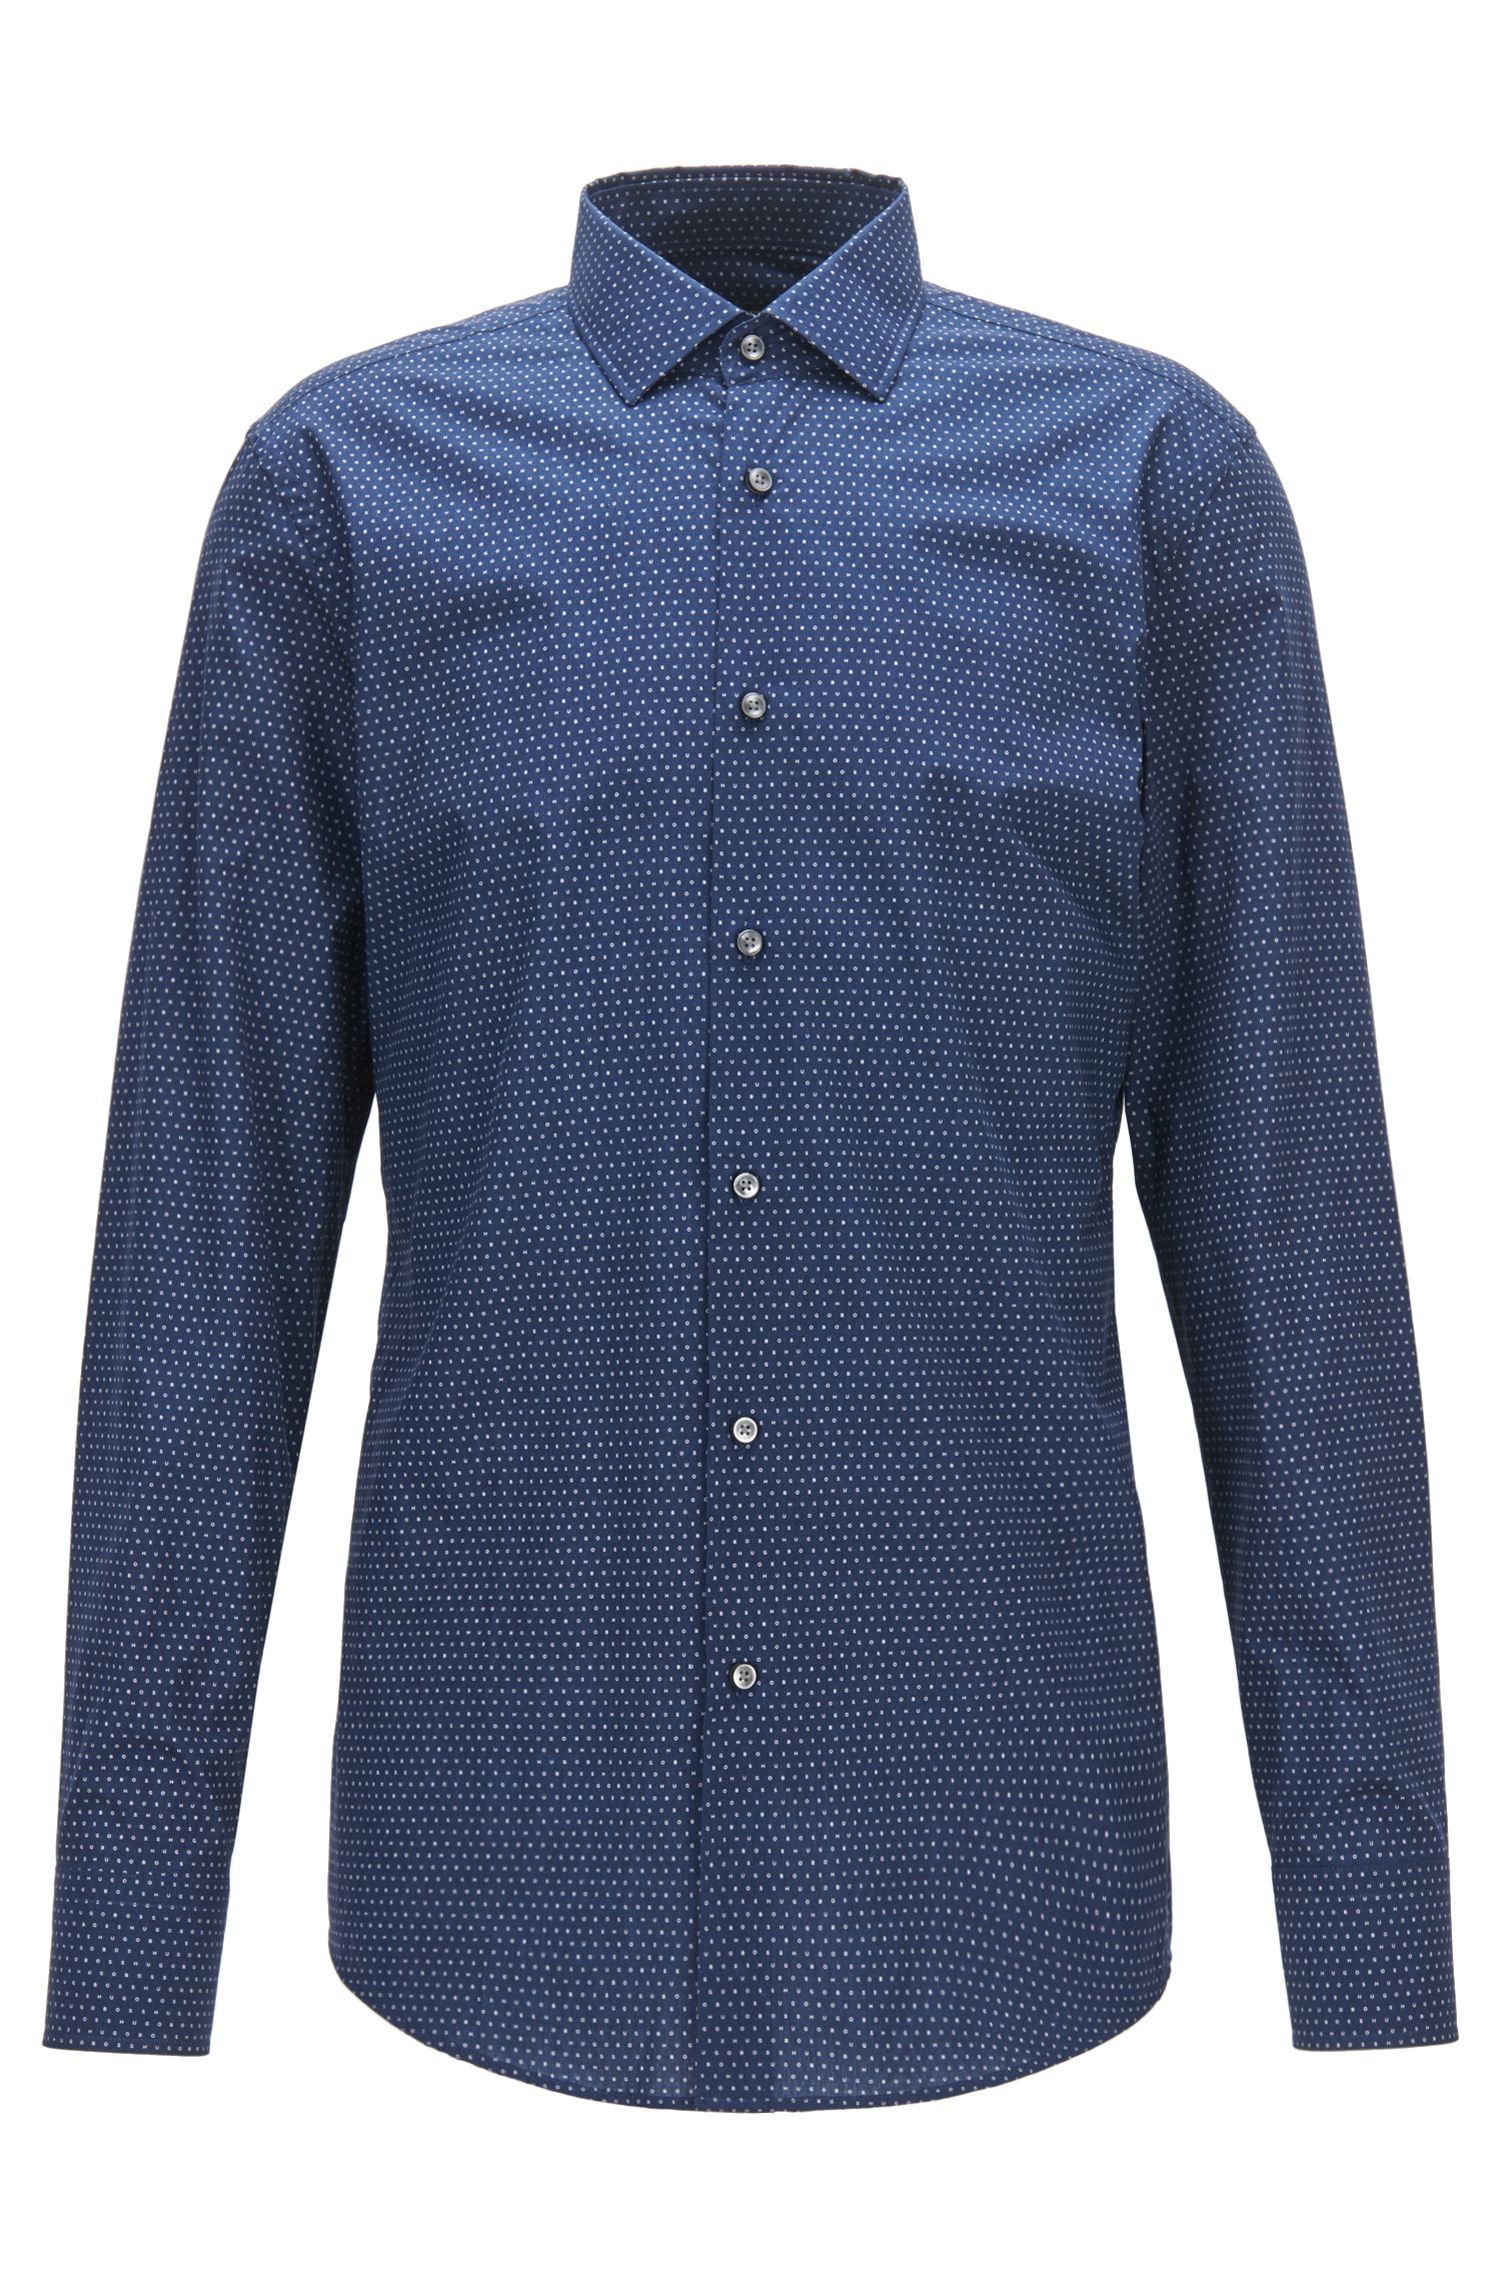 Camicia slim fit in cotone con stampa all-over